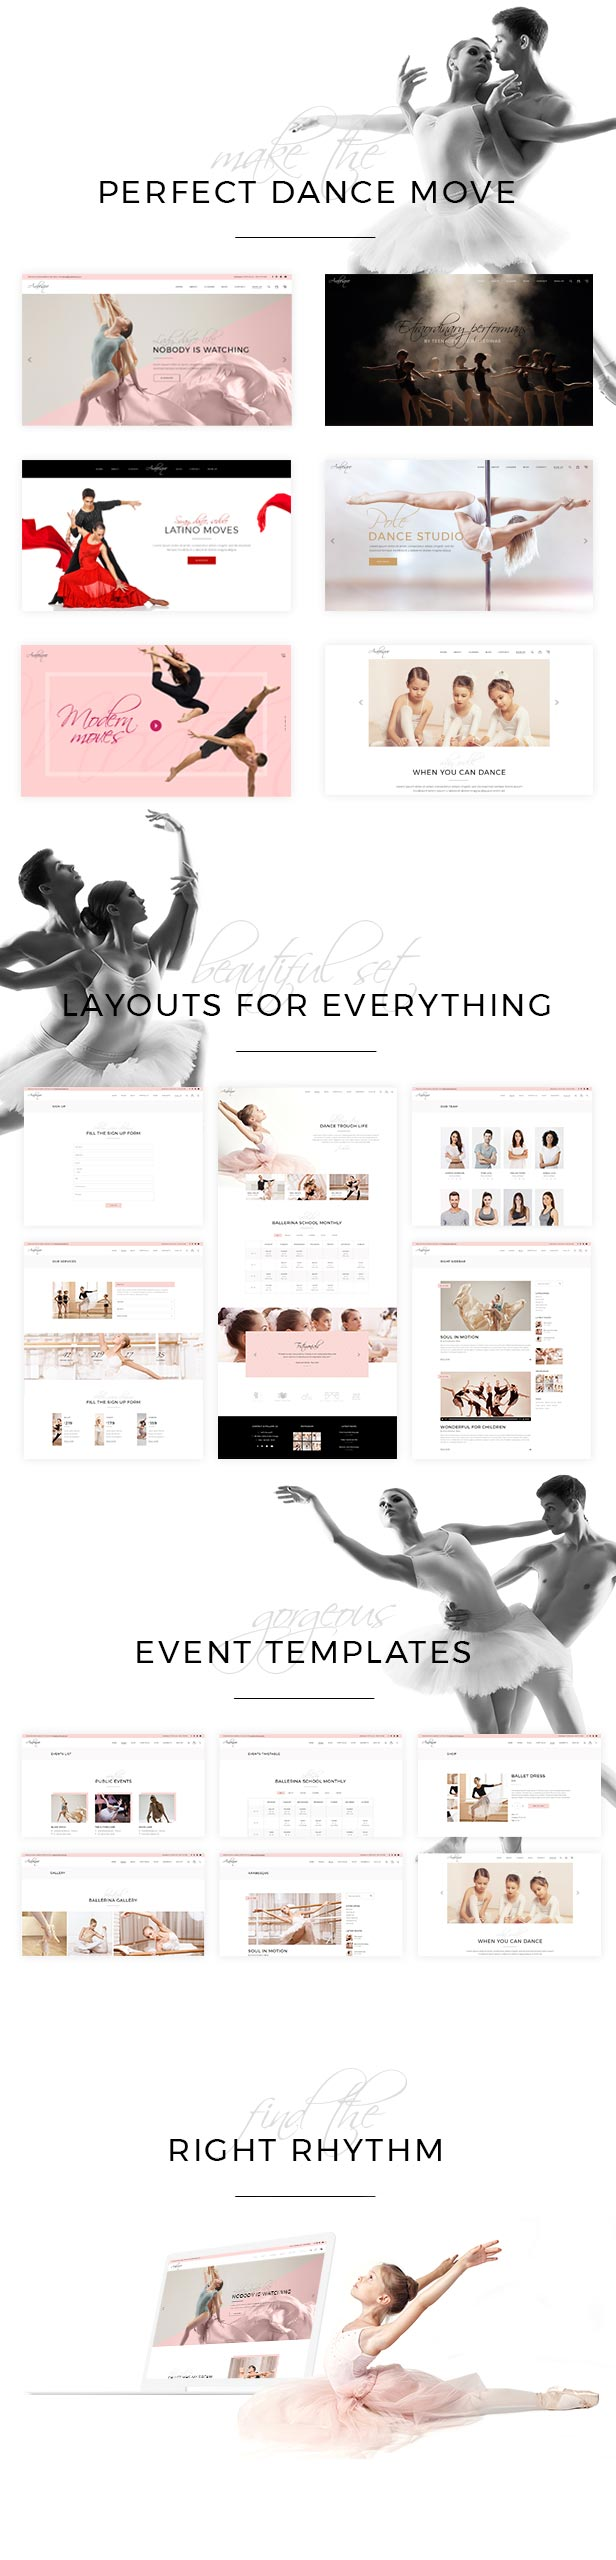 Arabesque - Modern Ballet School and Dance Studio Theme - 1